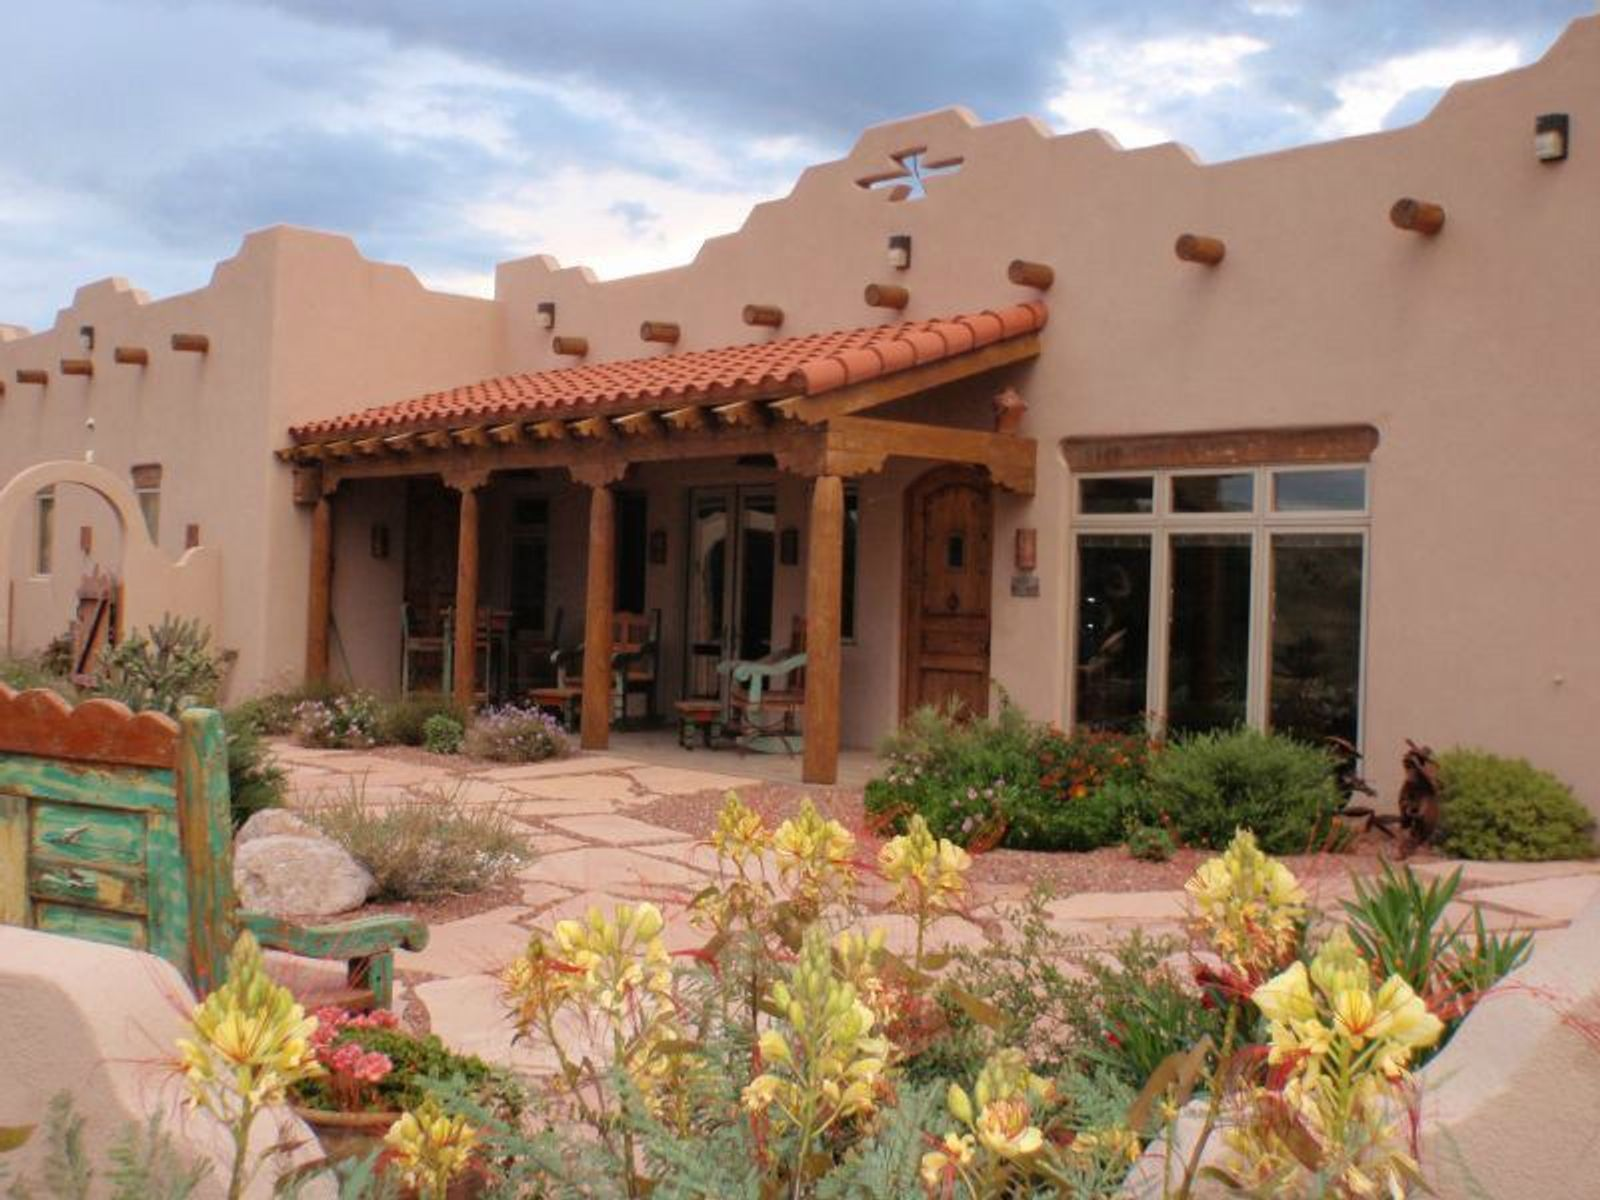 99 Black Range Road, Hillsboro NM Single Family Home - Santa Fe Real Estate